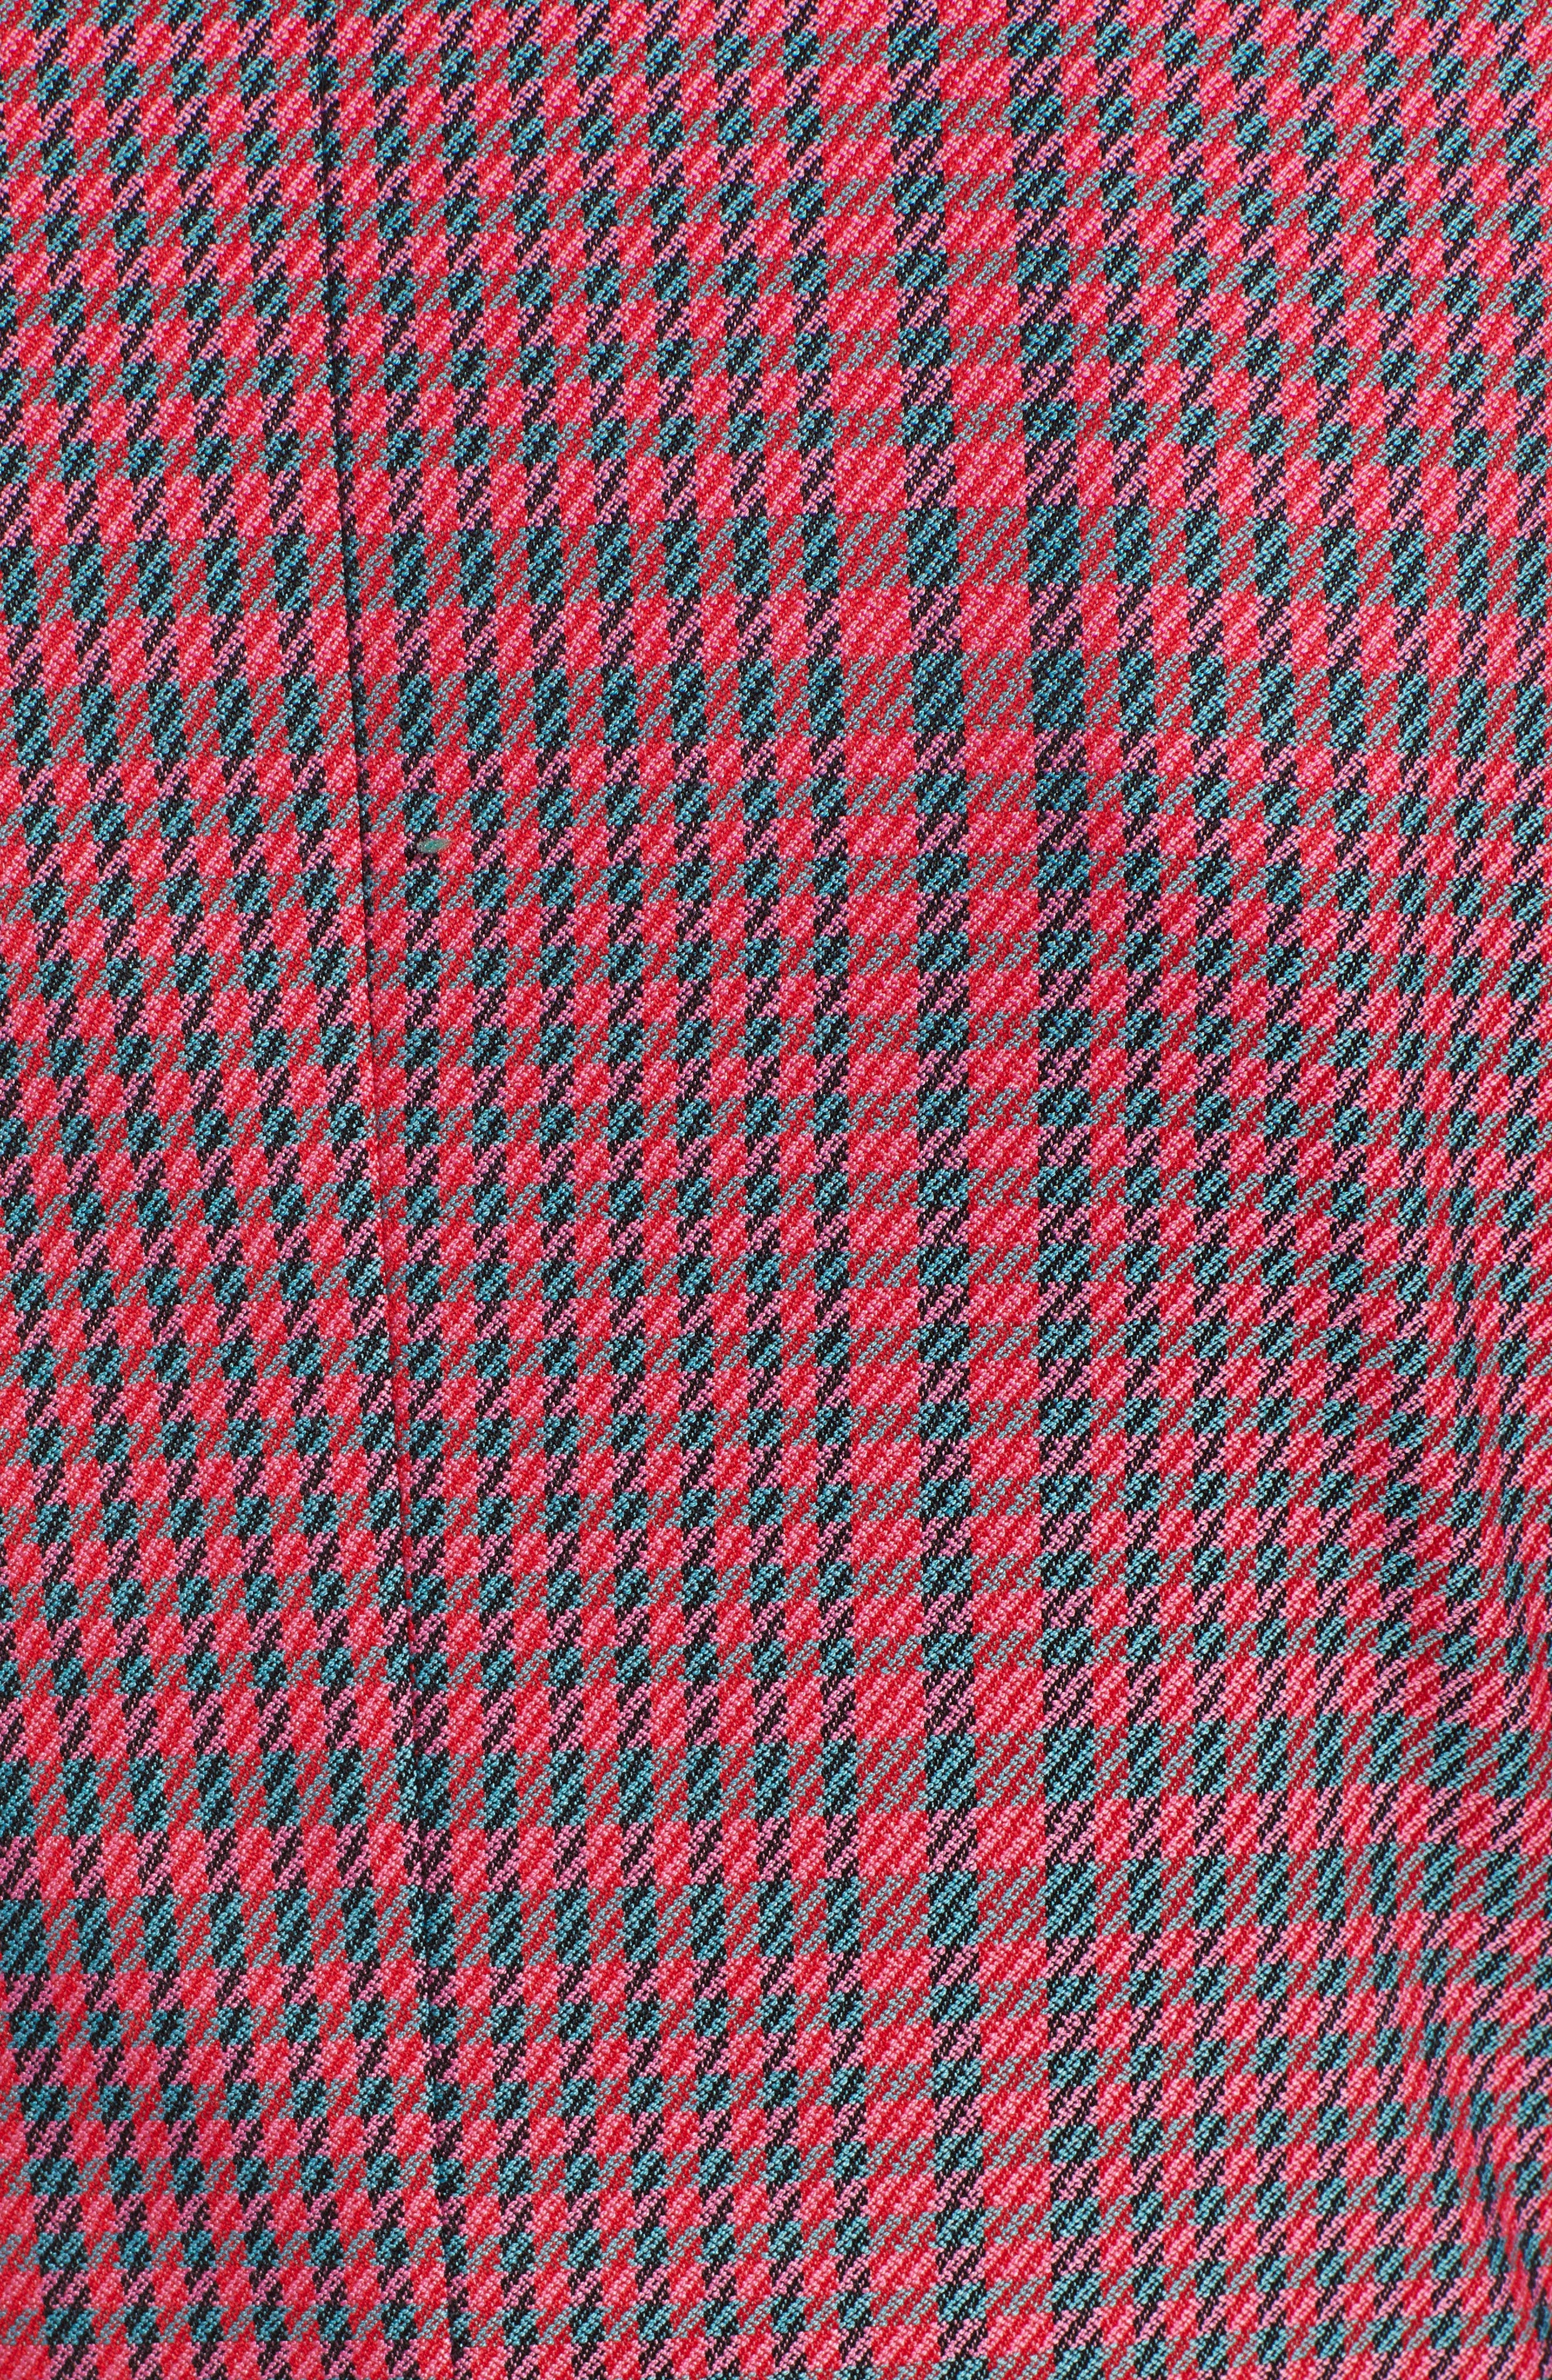 Plaid Blazer,                             Alternate thumbnail 7, color,                             PINK SIMONE PLAID